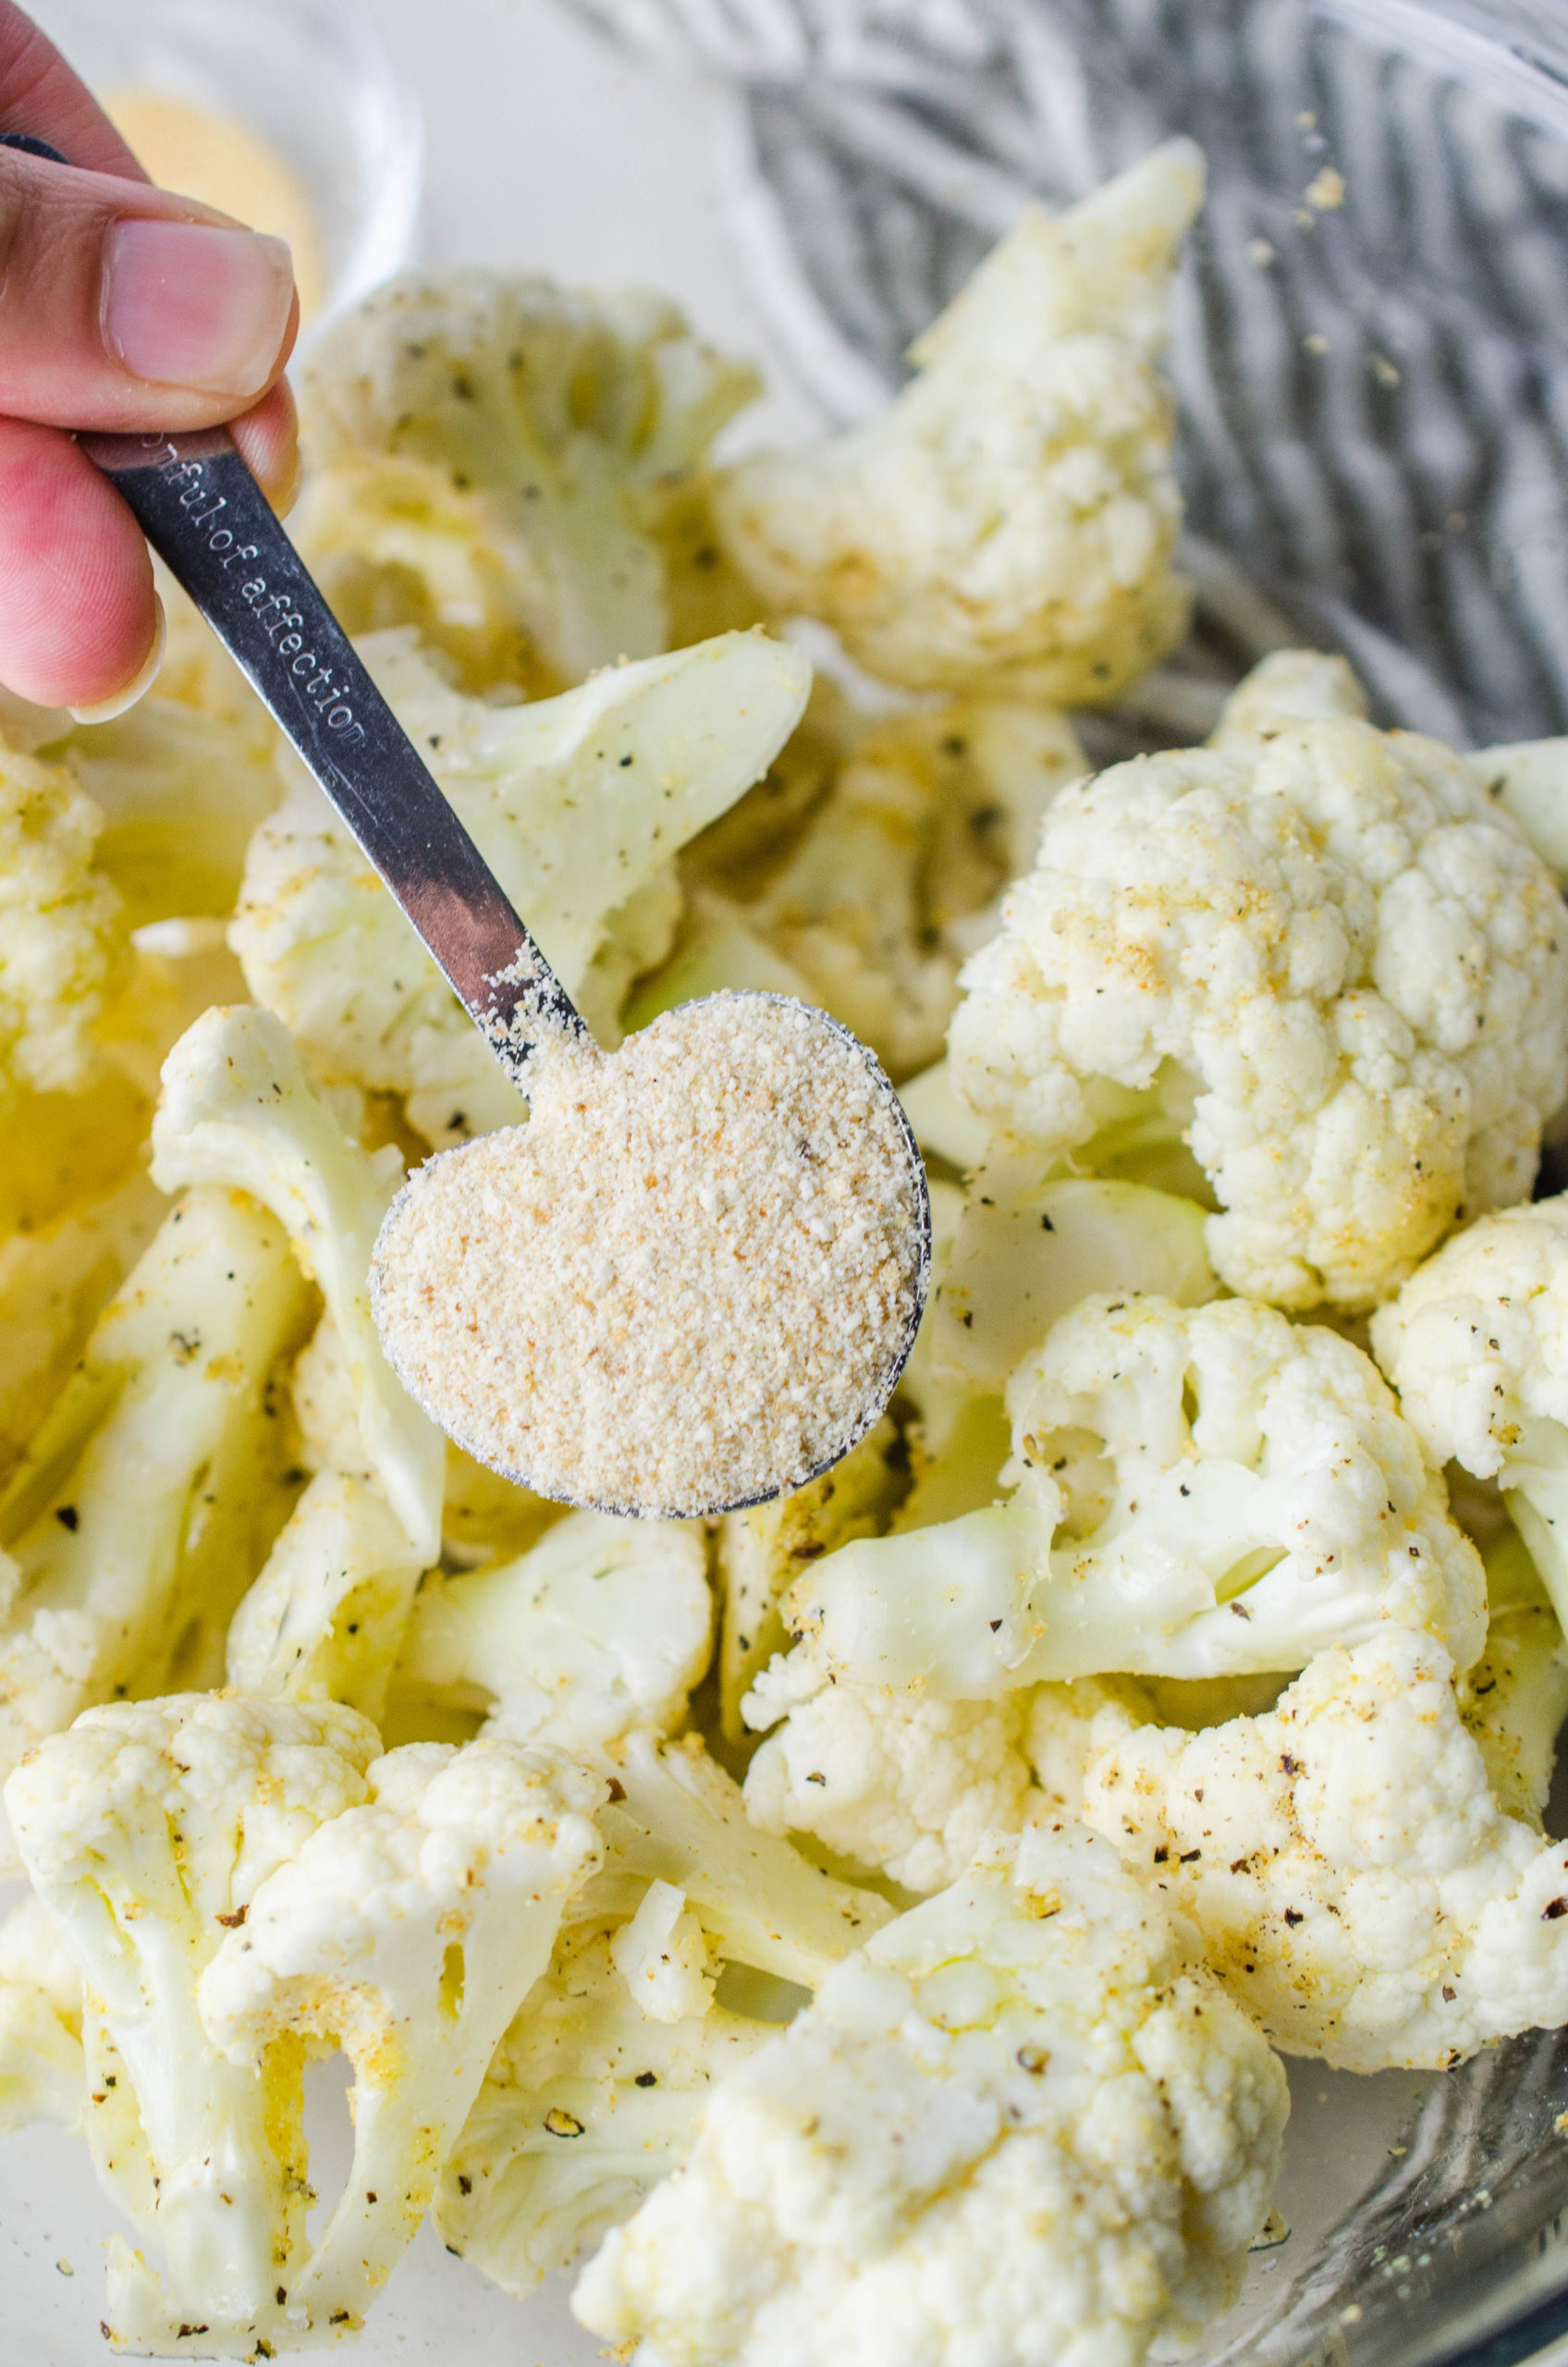 A spoonful of granulated garlic sprinkled over raw cauliflower